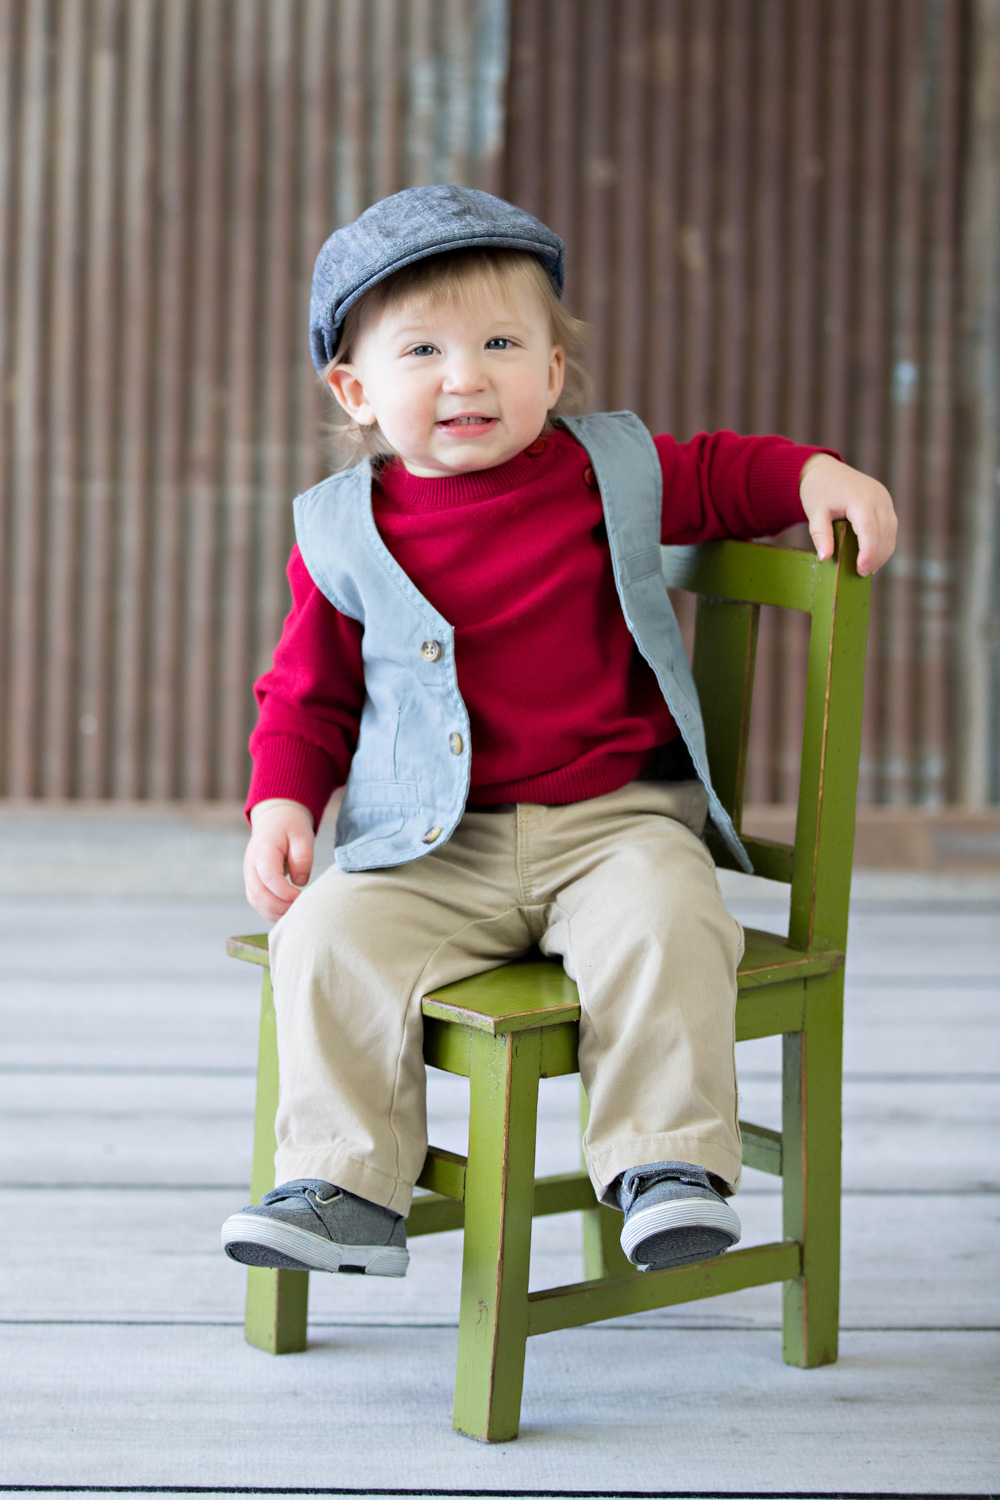 little boy green chair studio pictures hillary frost.jpg